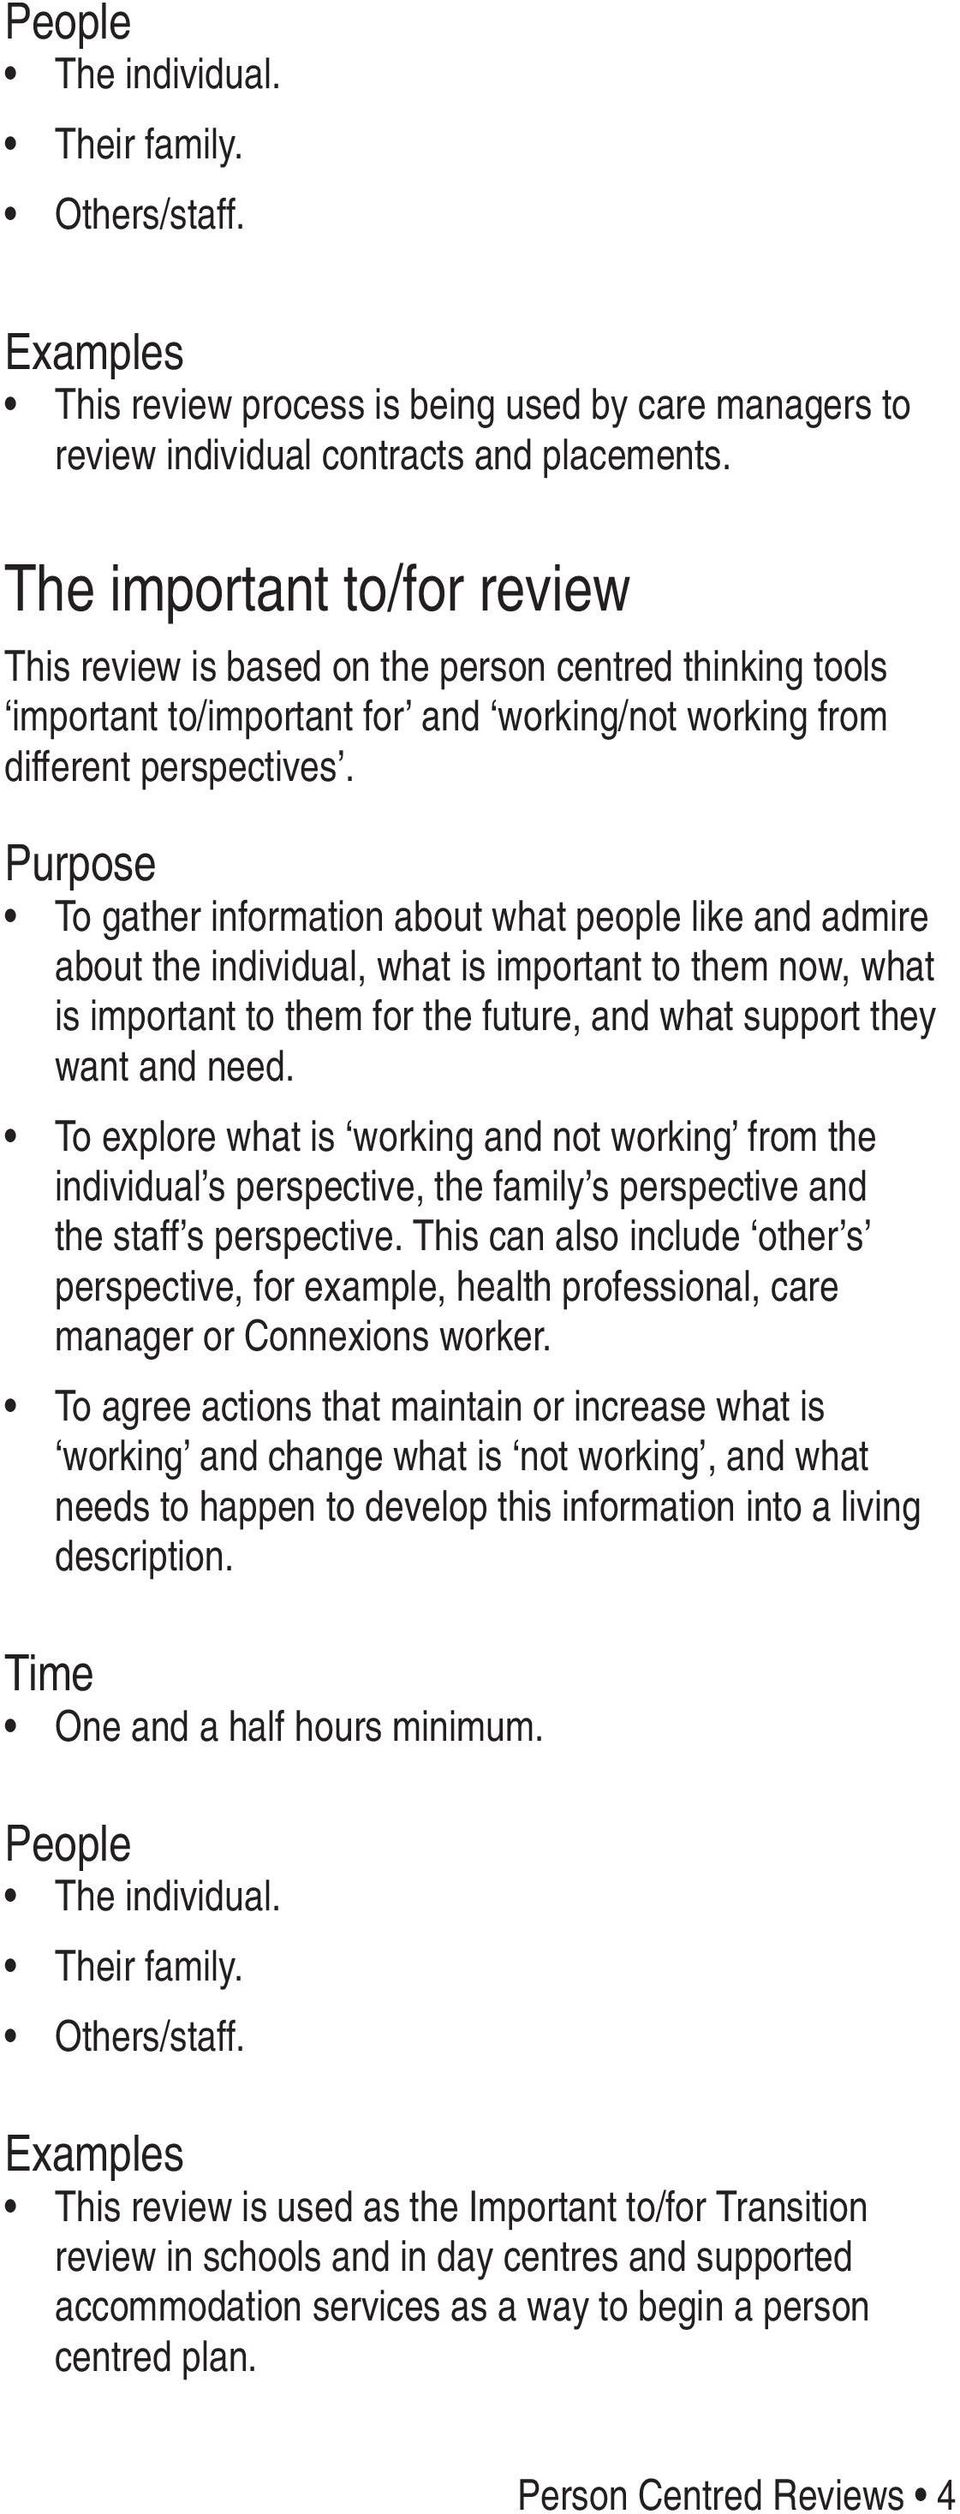 Purpose To gather information about what people like and admire about the individual, what is important to them now, what is important to them for the future, and what support they want and need.